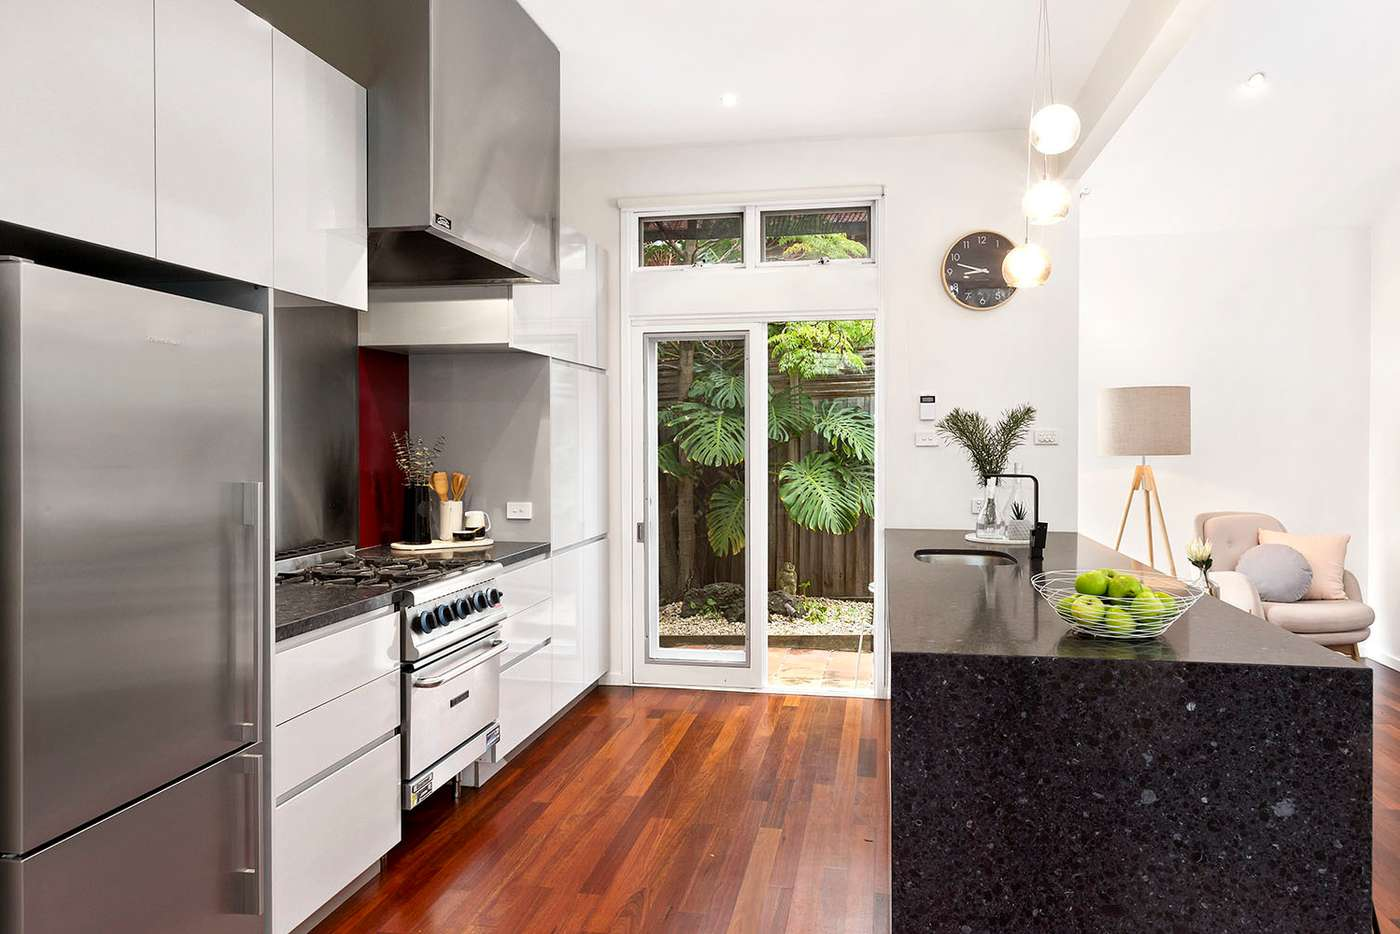 Fifth view of Homely house listing, 16 Allison Road, Elsternwick VIC 3185